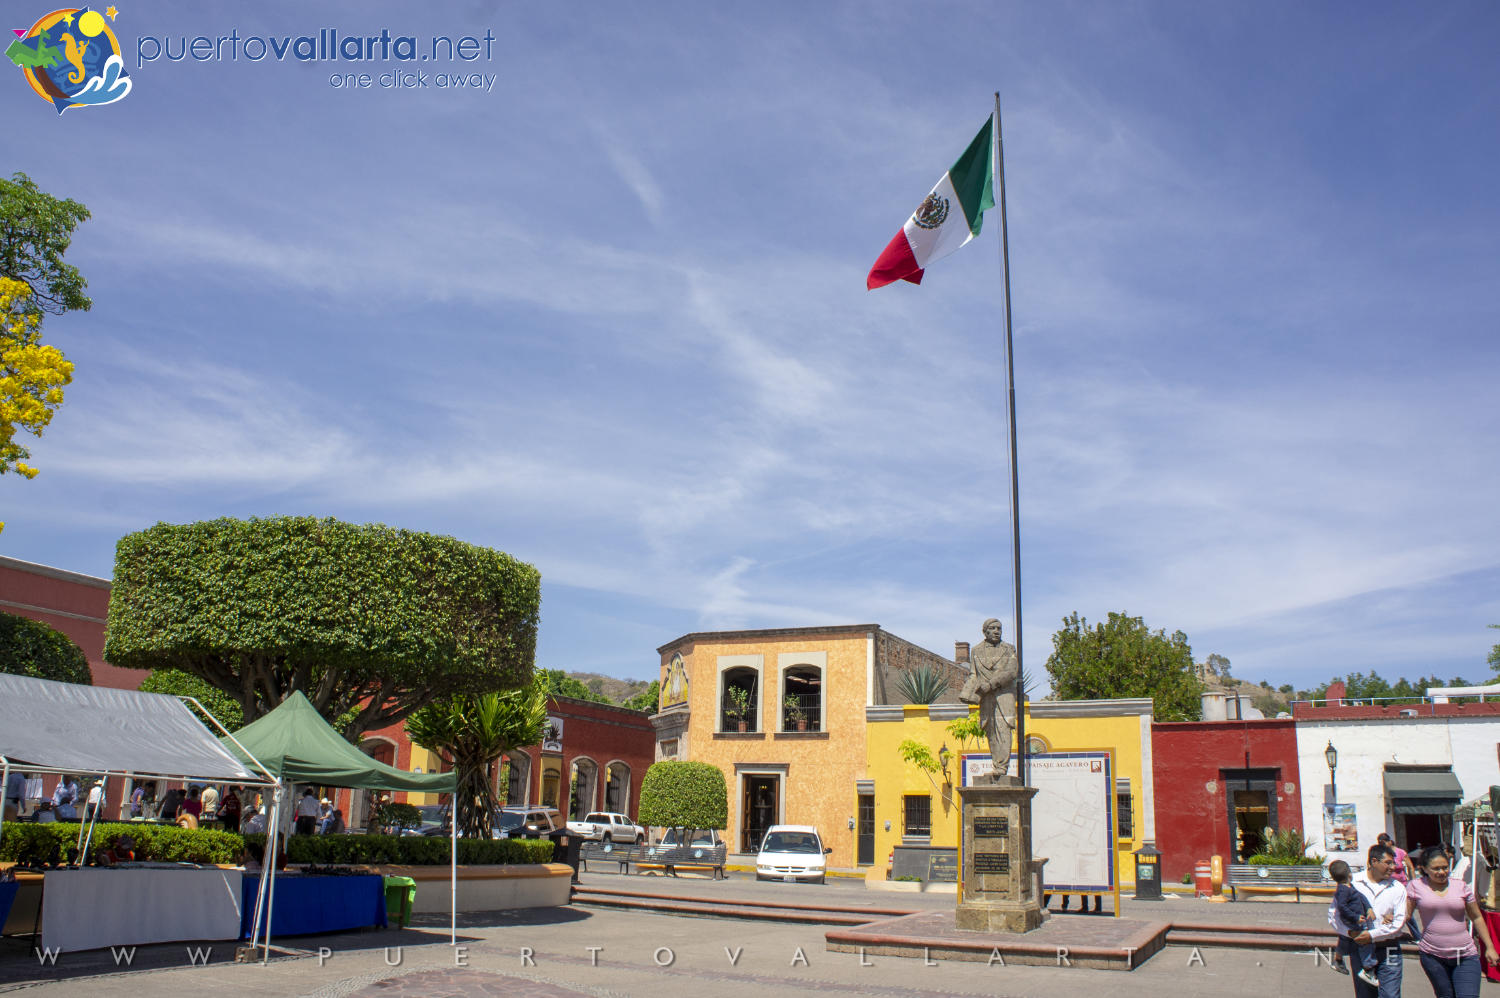 Main Square of Tequila